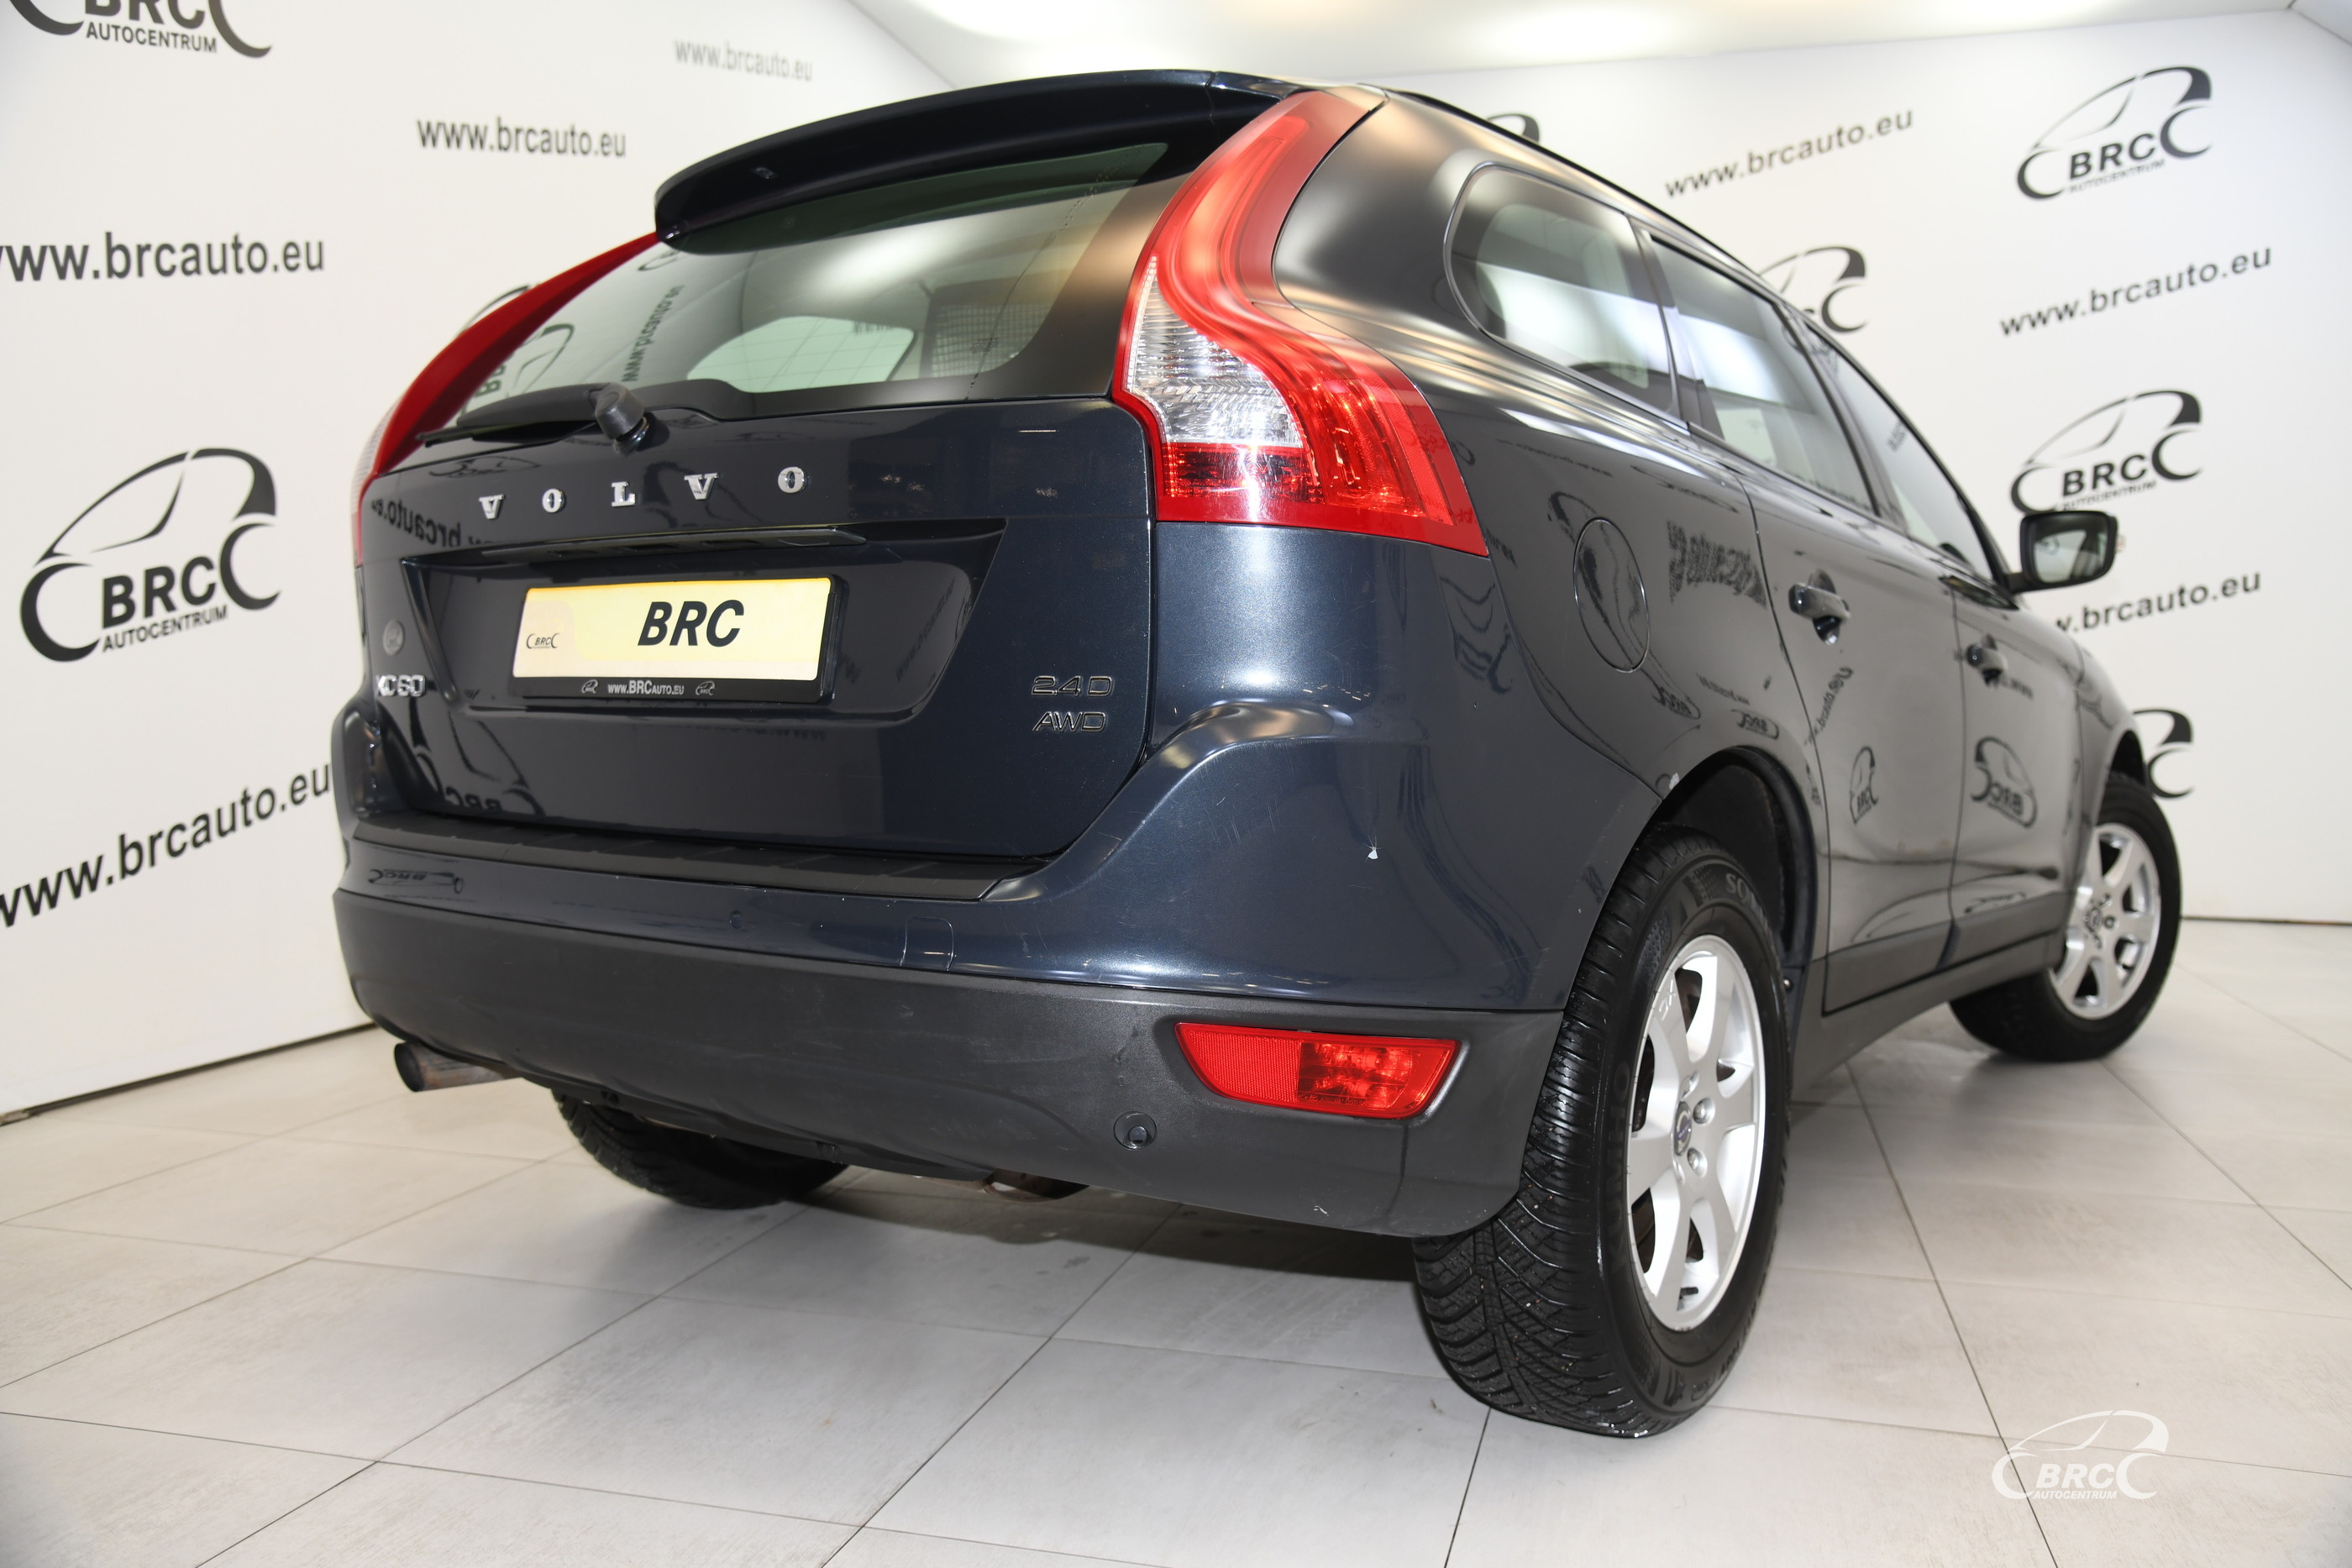 Volvo XC 60 2.4D AWD Kinetic Automatas